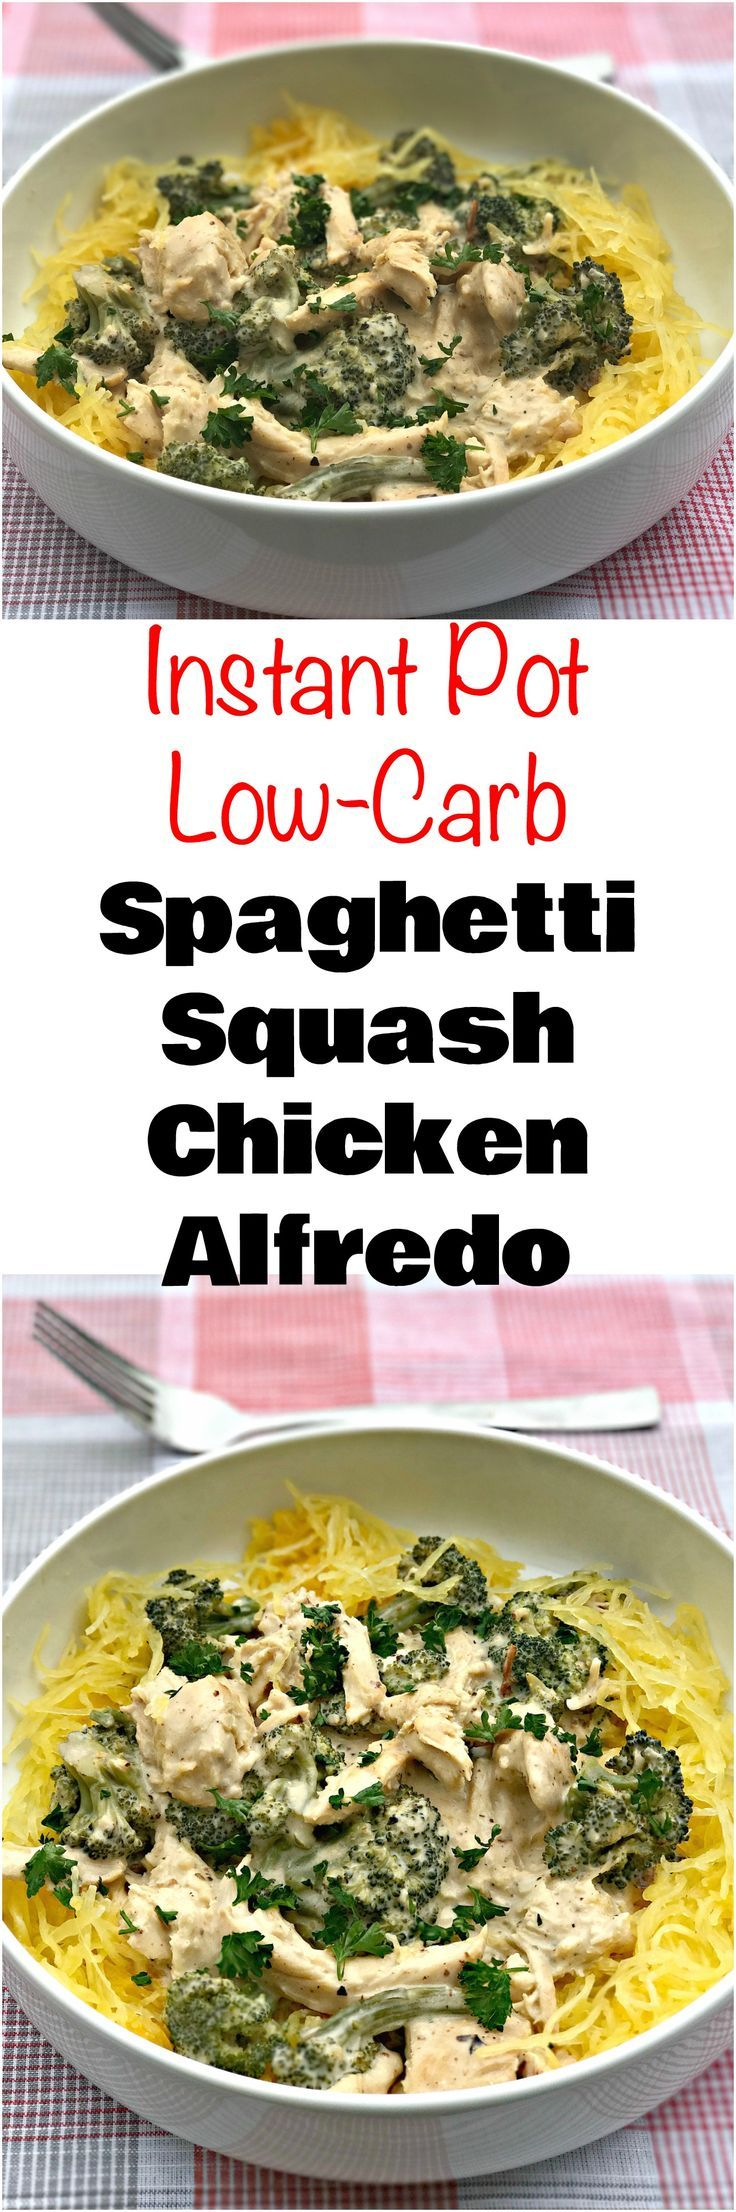 Instant Pot Spaghetti Squash Chicken Alfredo is a quick and easy low-carb recipe packed with creamy alfredo sauce and savory chicken. #LowCarb #LowCarbRecipes #Keto #KetoRecipes #InstantPot #InstantPotRecipes #PressureCooker #PressureCookerRecipes